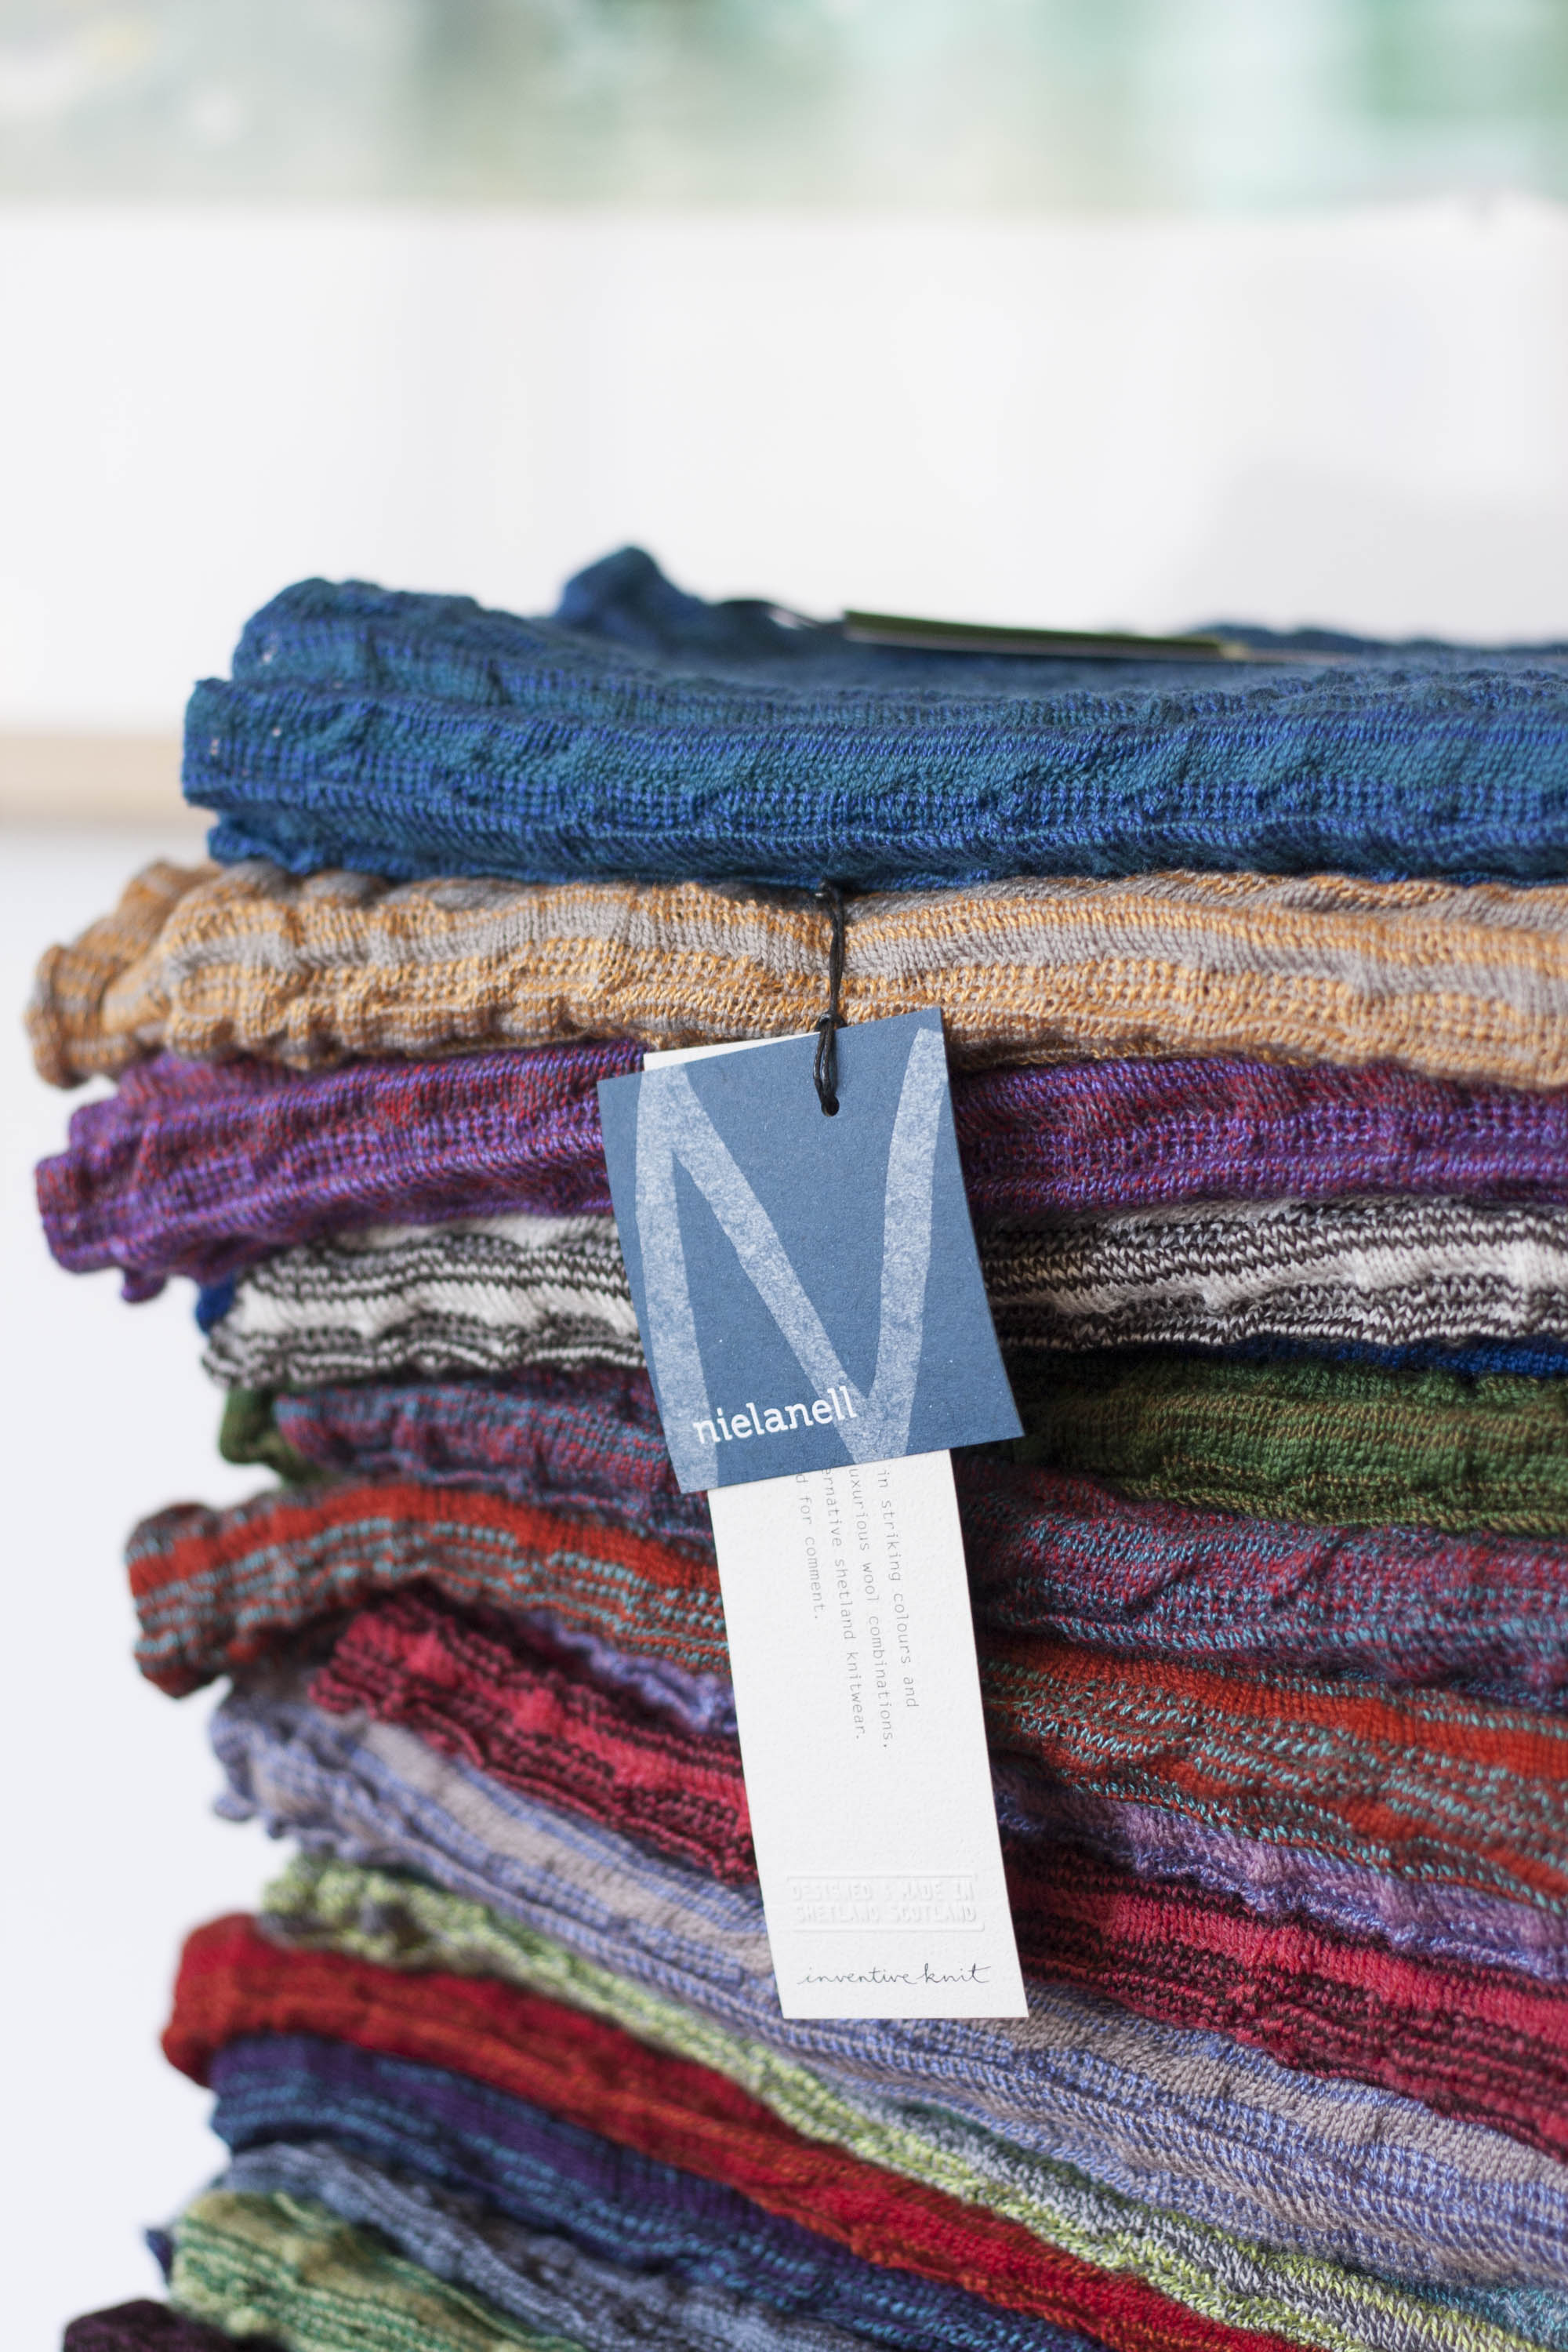 A stack of Rigg capes in the Nielanell studio, Shetland. Many different colours in a ridged, knitted textile